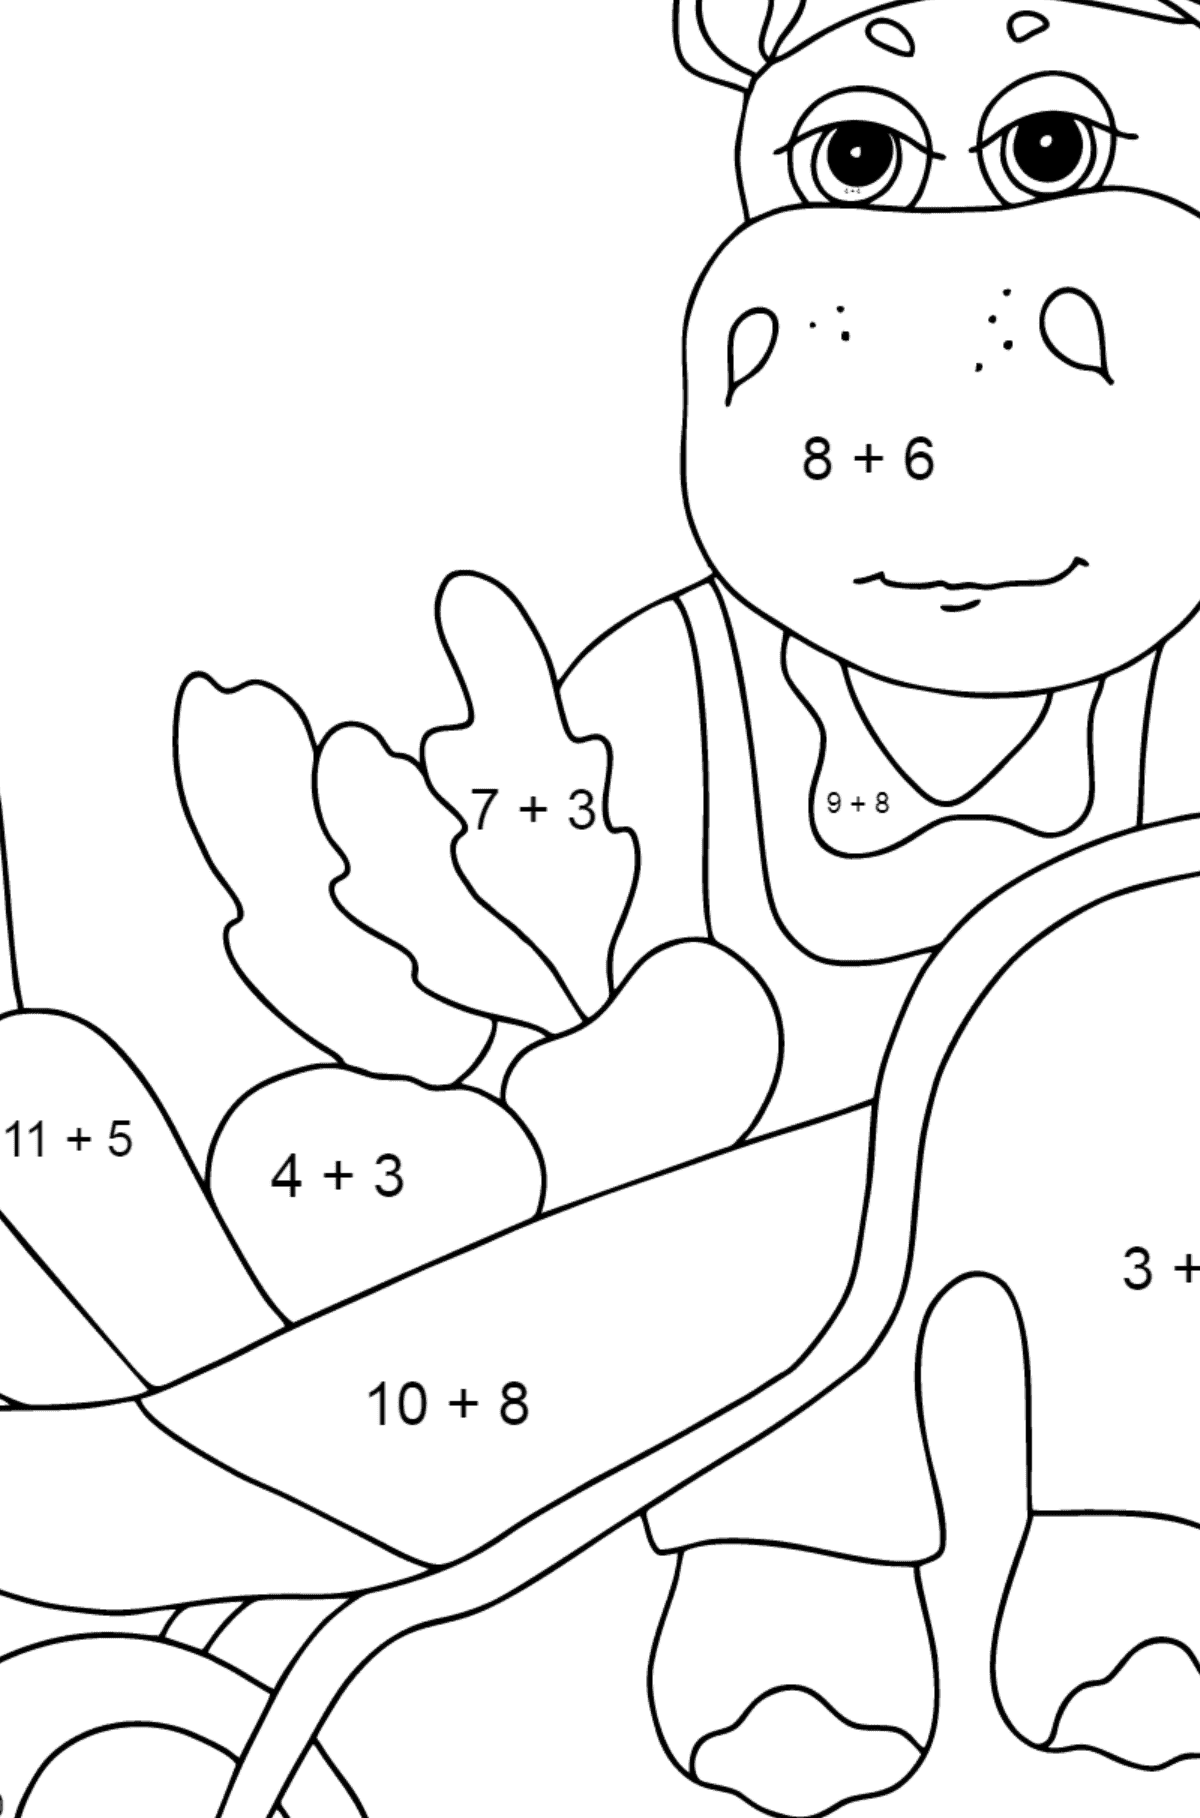 Coloring Page - A Hippo with a Cart for Children  - Color by Number Addition